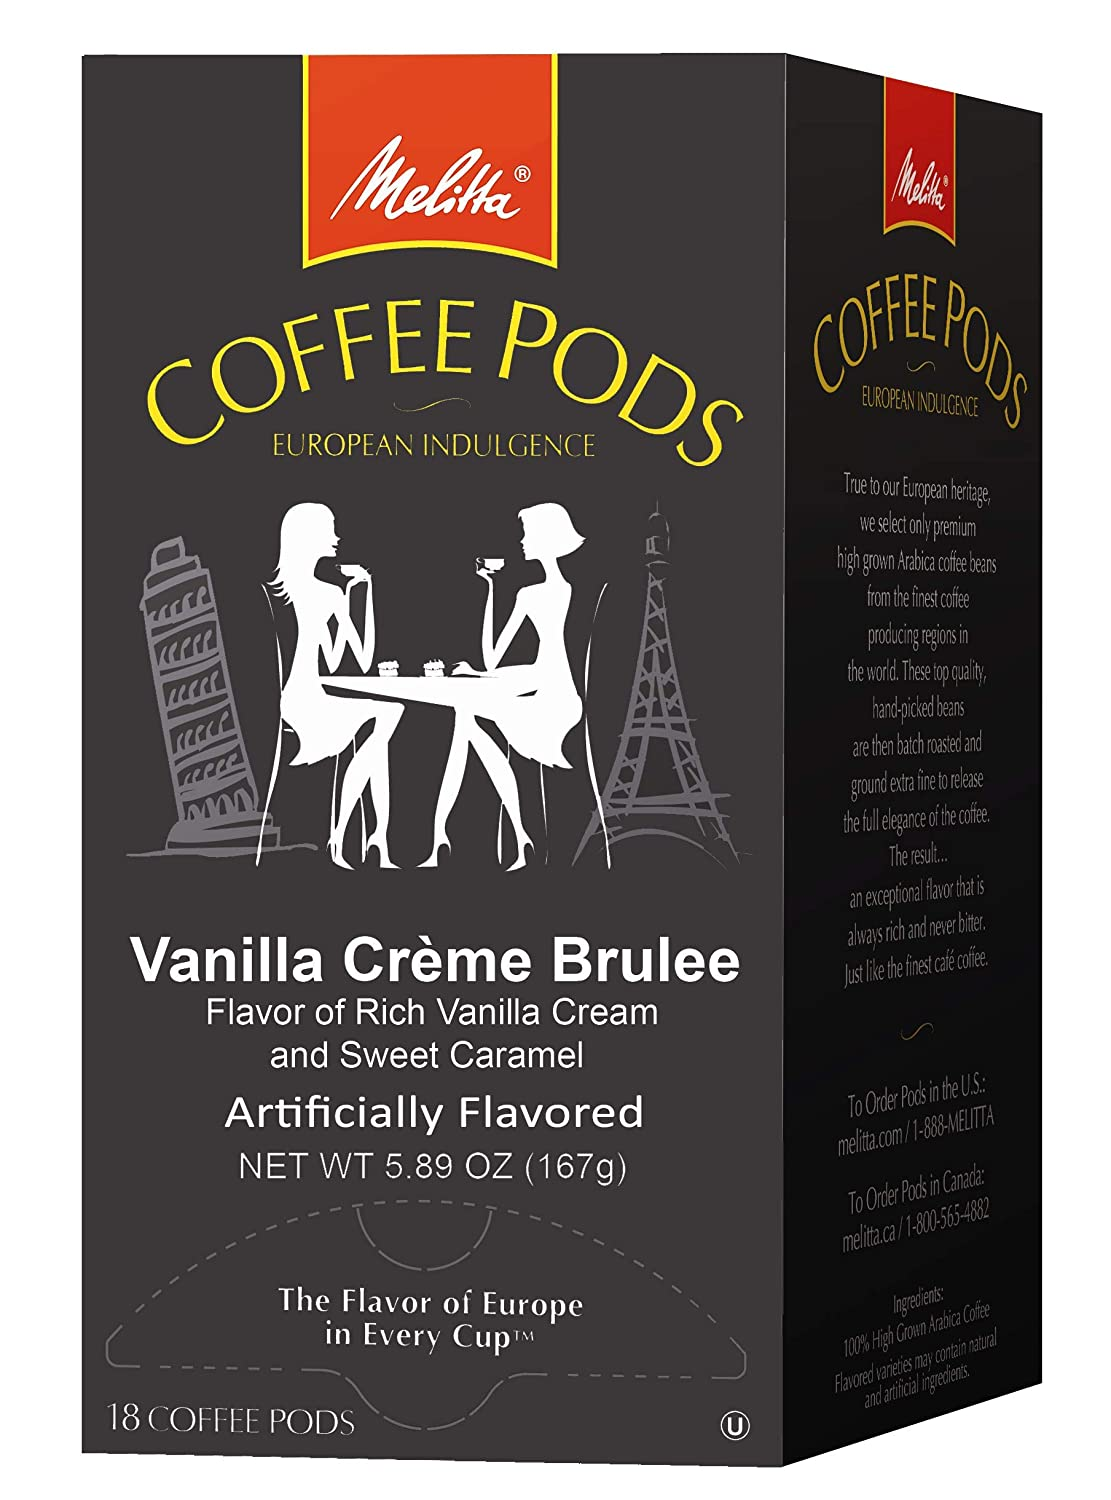 Melitta Coffee Pods for Senseo & Hamilton Beach Pod Brewers, Vanilla Creme Brulee Flavored Coffee Medium Roast, 18 Count